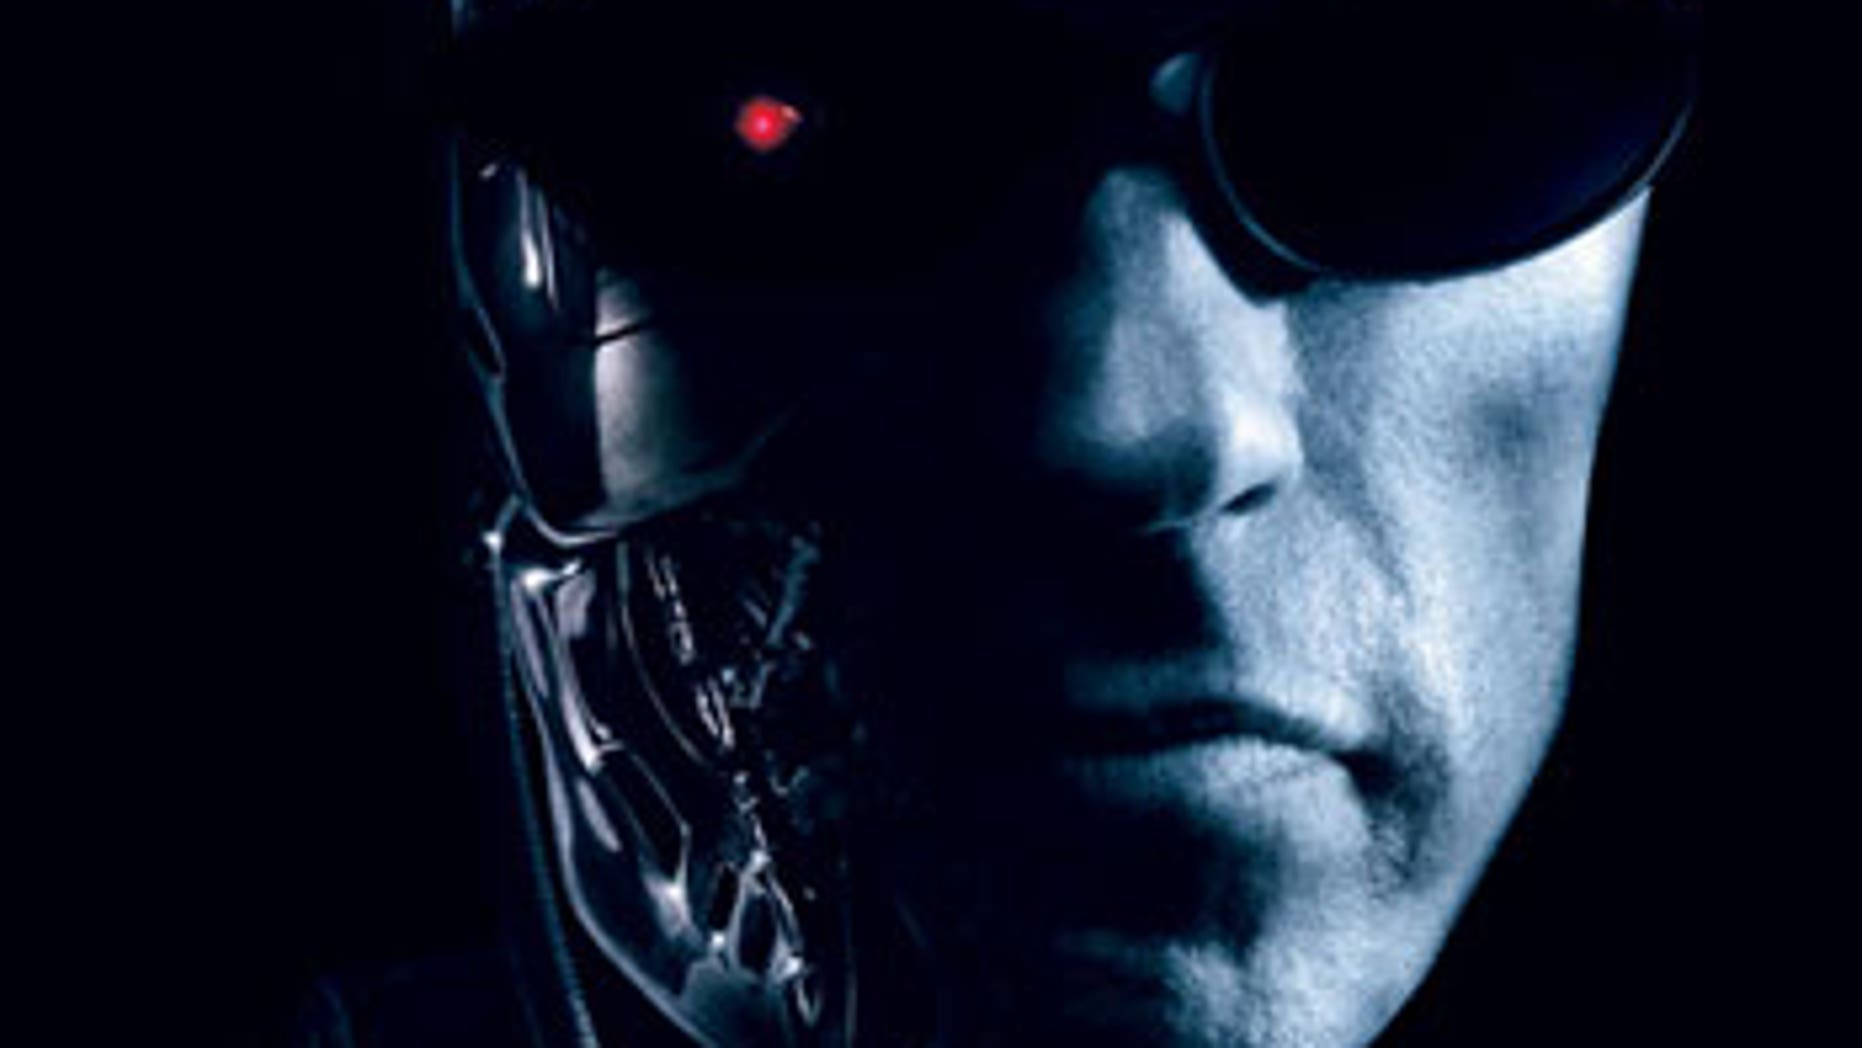 Terminator (1984): Starring Arnold Schwarzenegger as a cyborg murderer who has returned to 1984 from 2029 with a goal to eliminate a tellurian race.